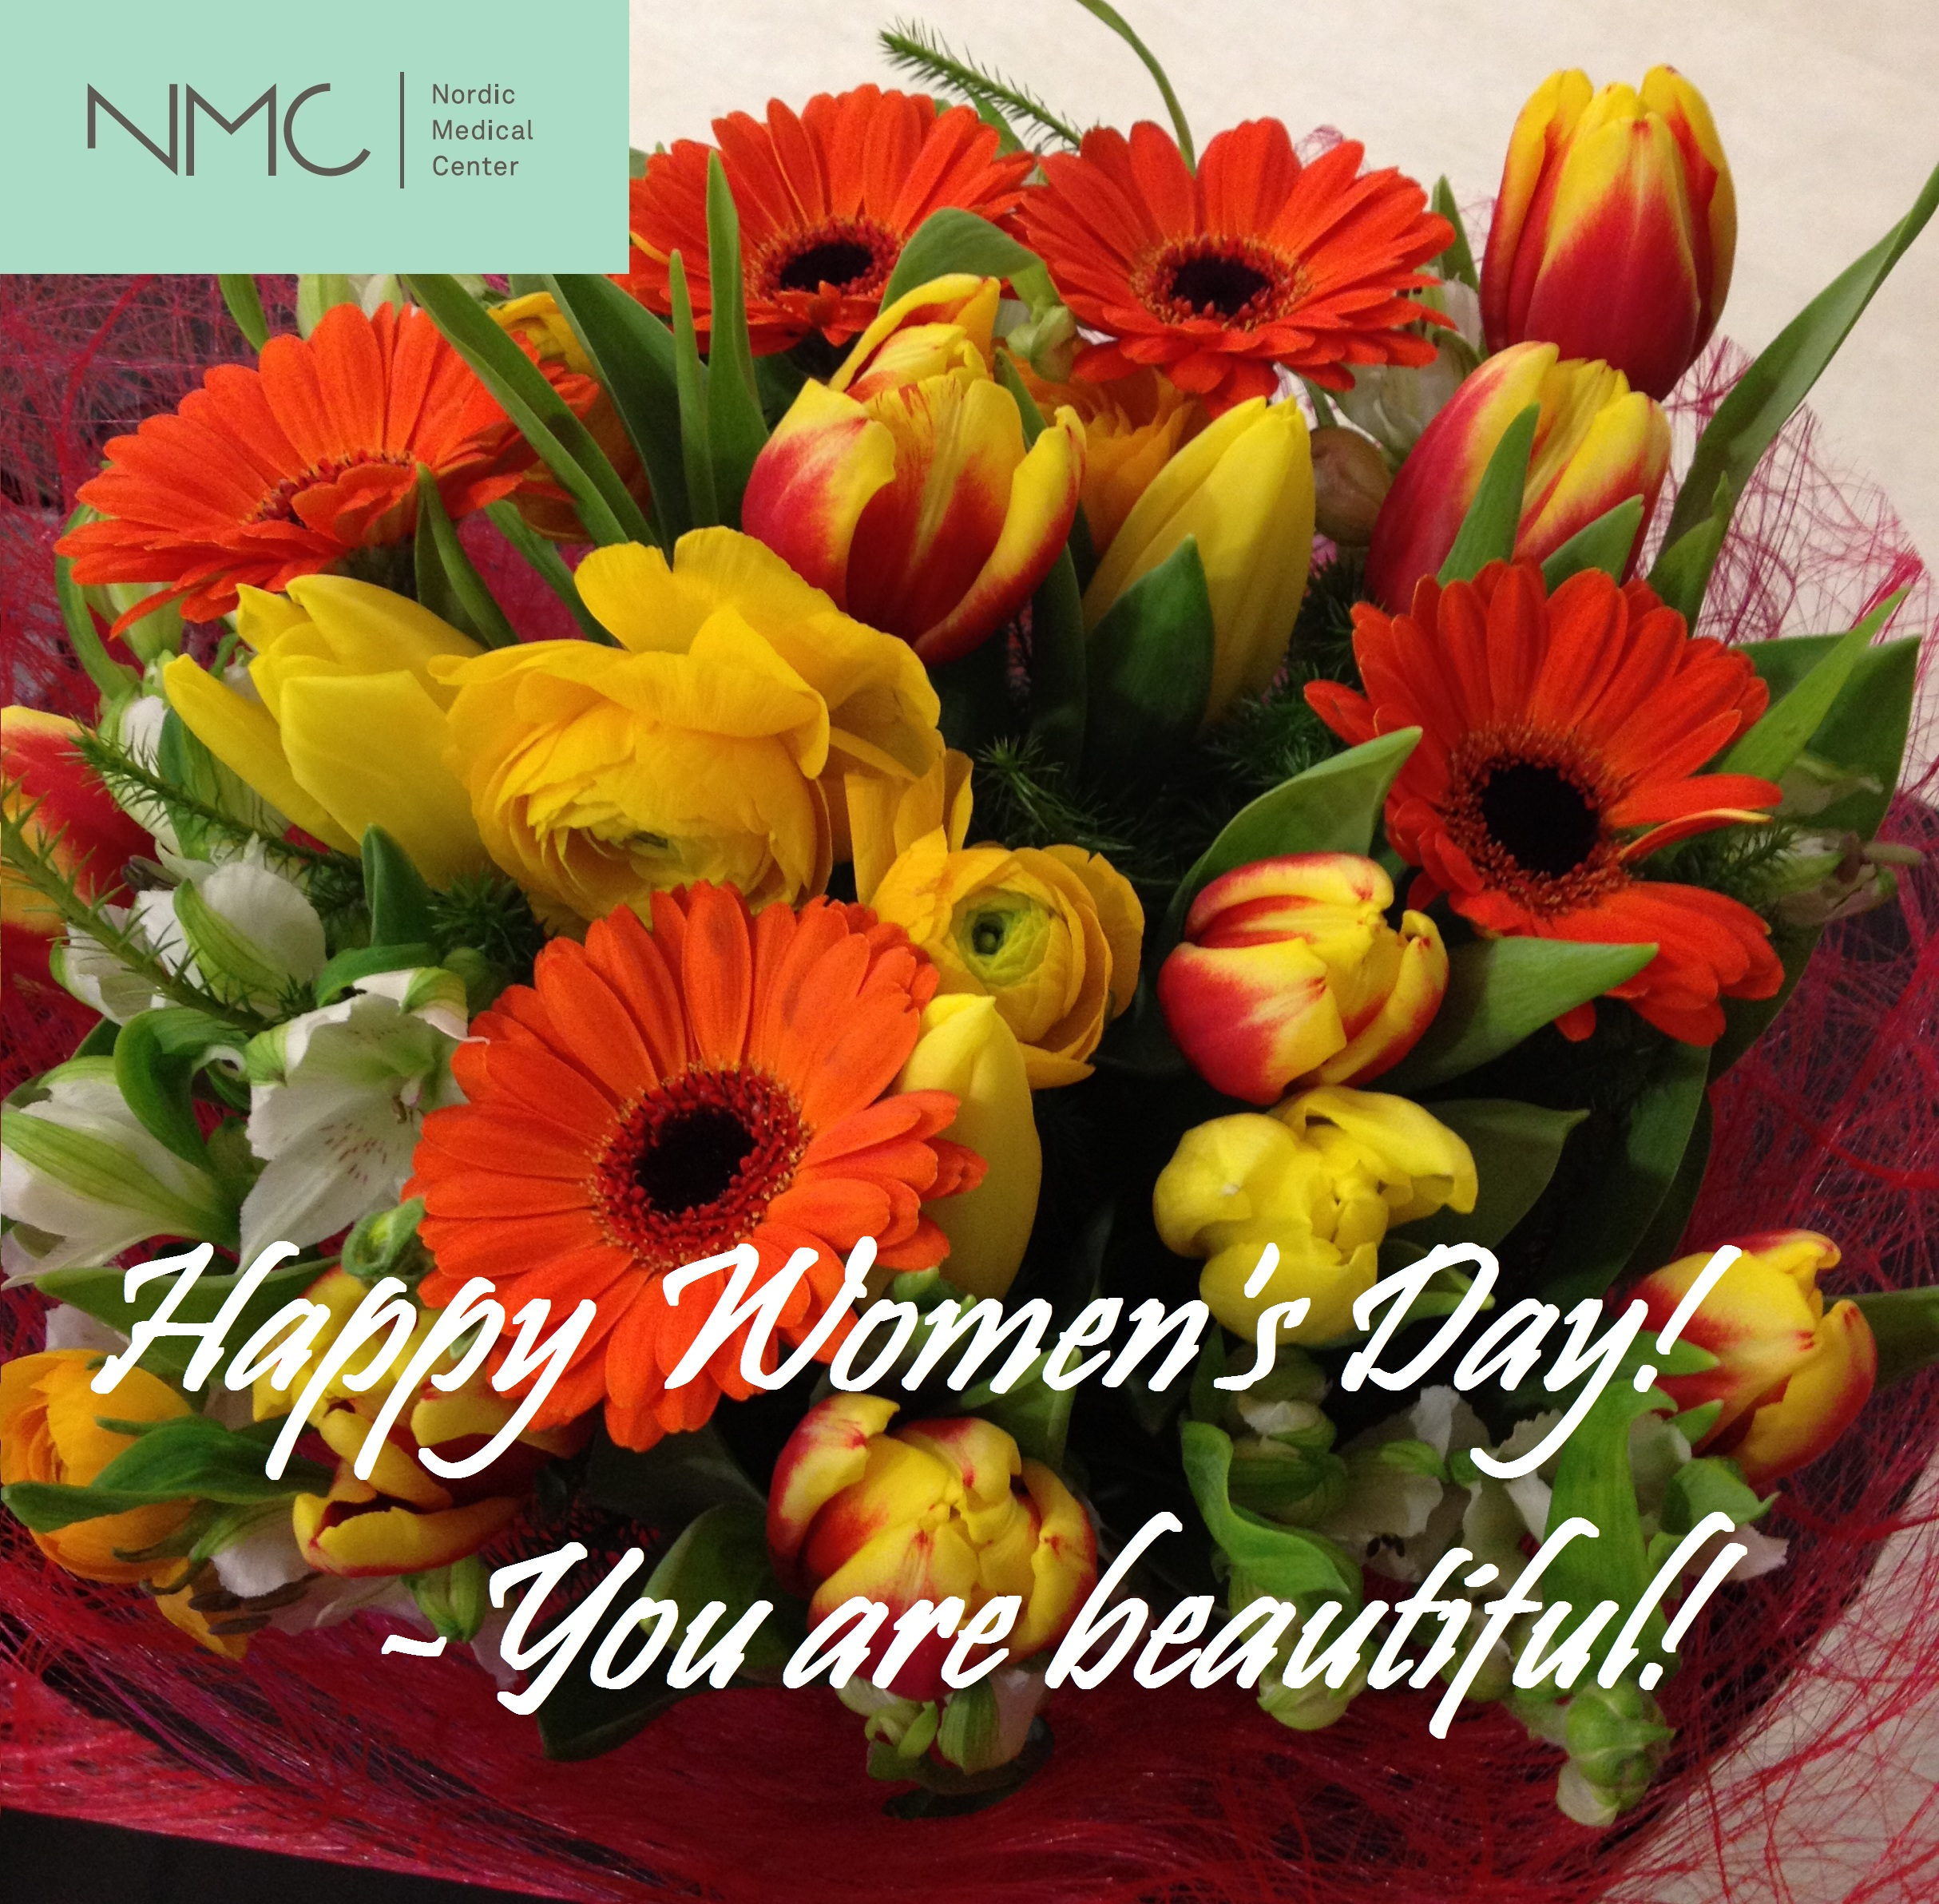 Nordic Medical Center Happy Women's Day!